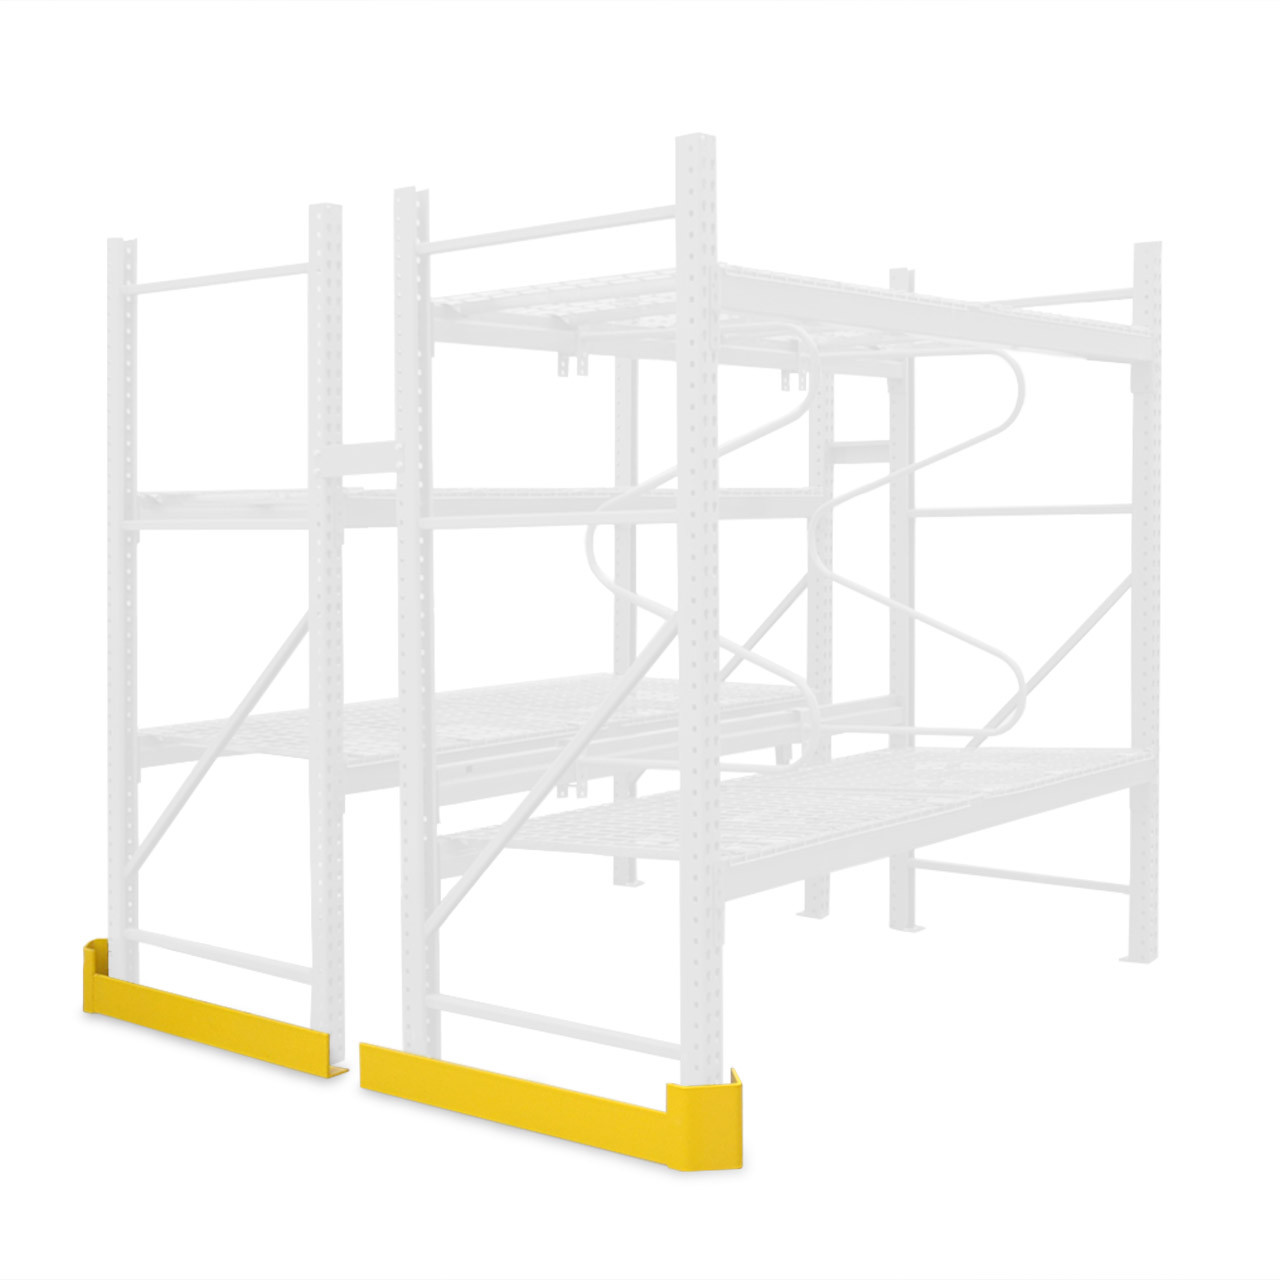 Aisle guards are installed at the base of the pallet rack for extra protection against collisions